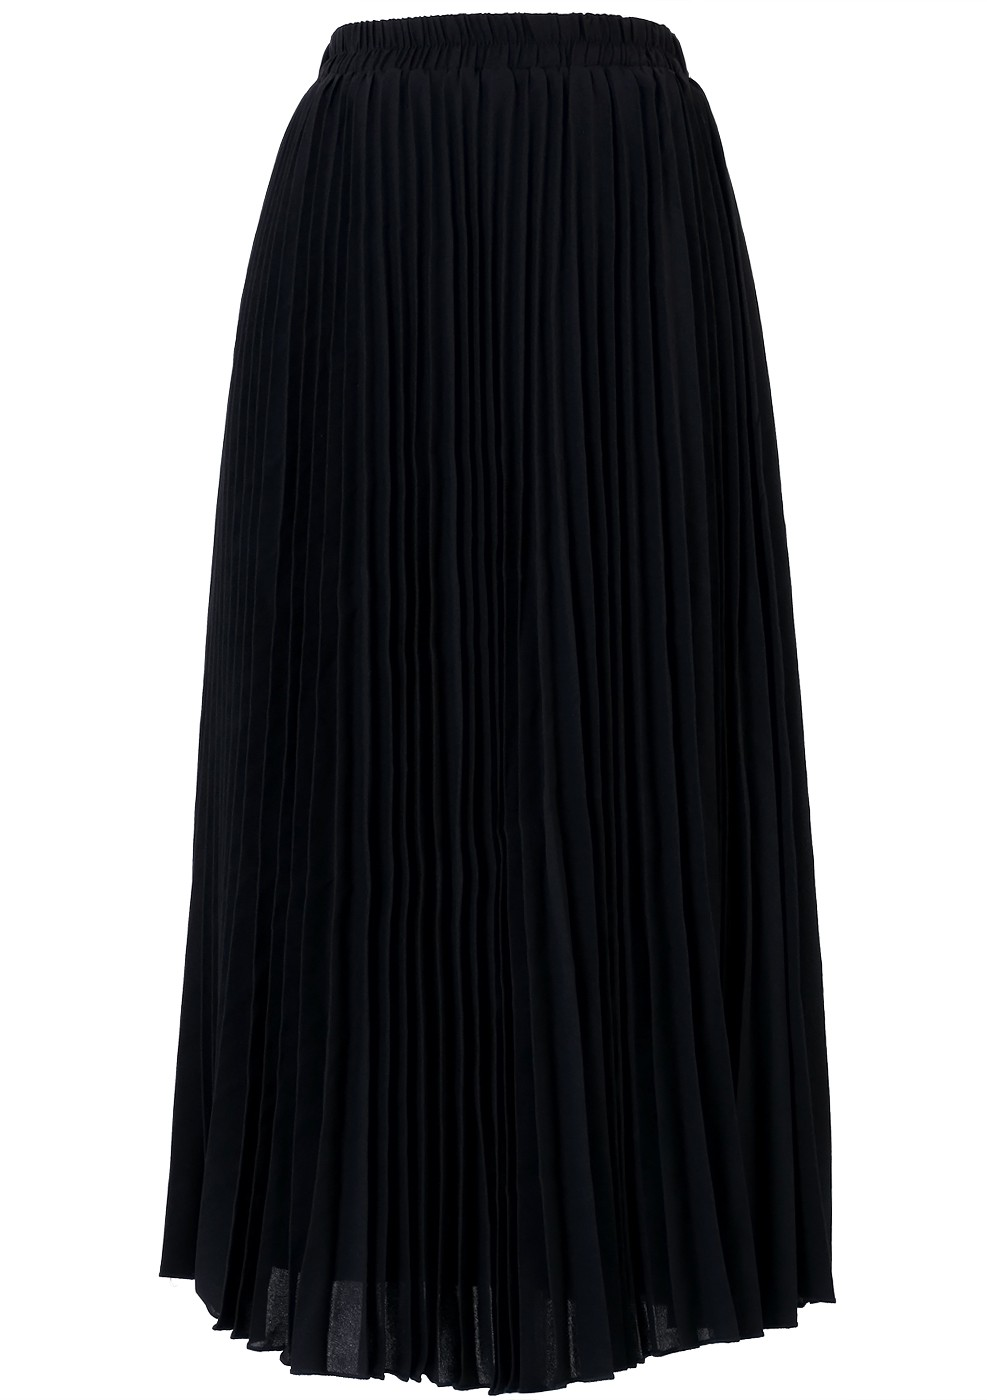 Long Pleated Skirts Dressedupgirl Com